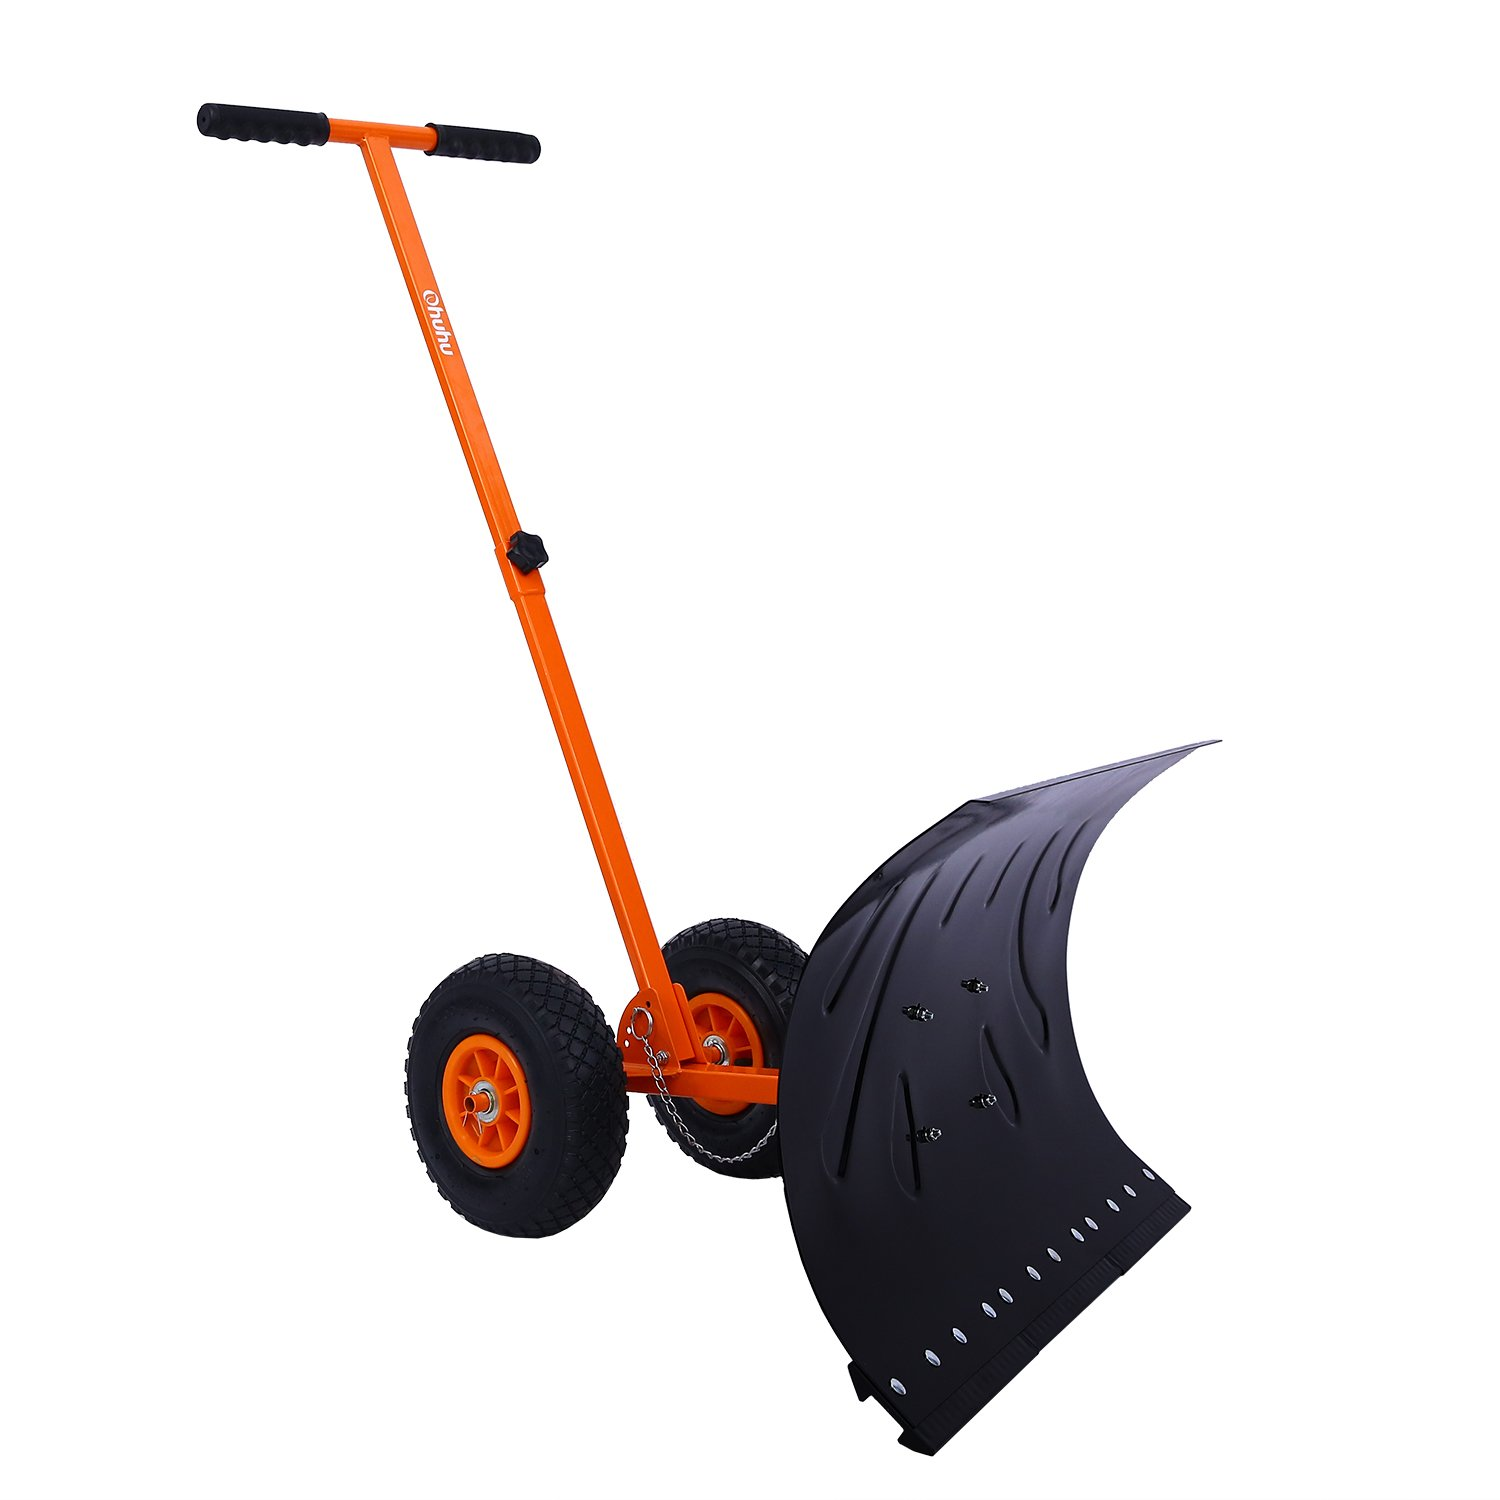 Ohuhu Snow Shovel, Adjustable Wheeled Snow Pusher, Heavy Duty Rolling Snow Plow Shovels, Efficient Snow Plow Snow Removal Tool by Ohuhu